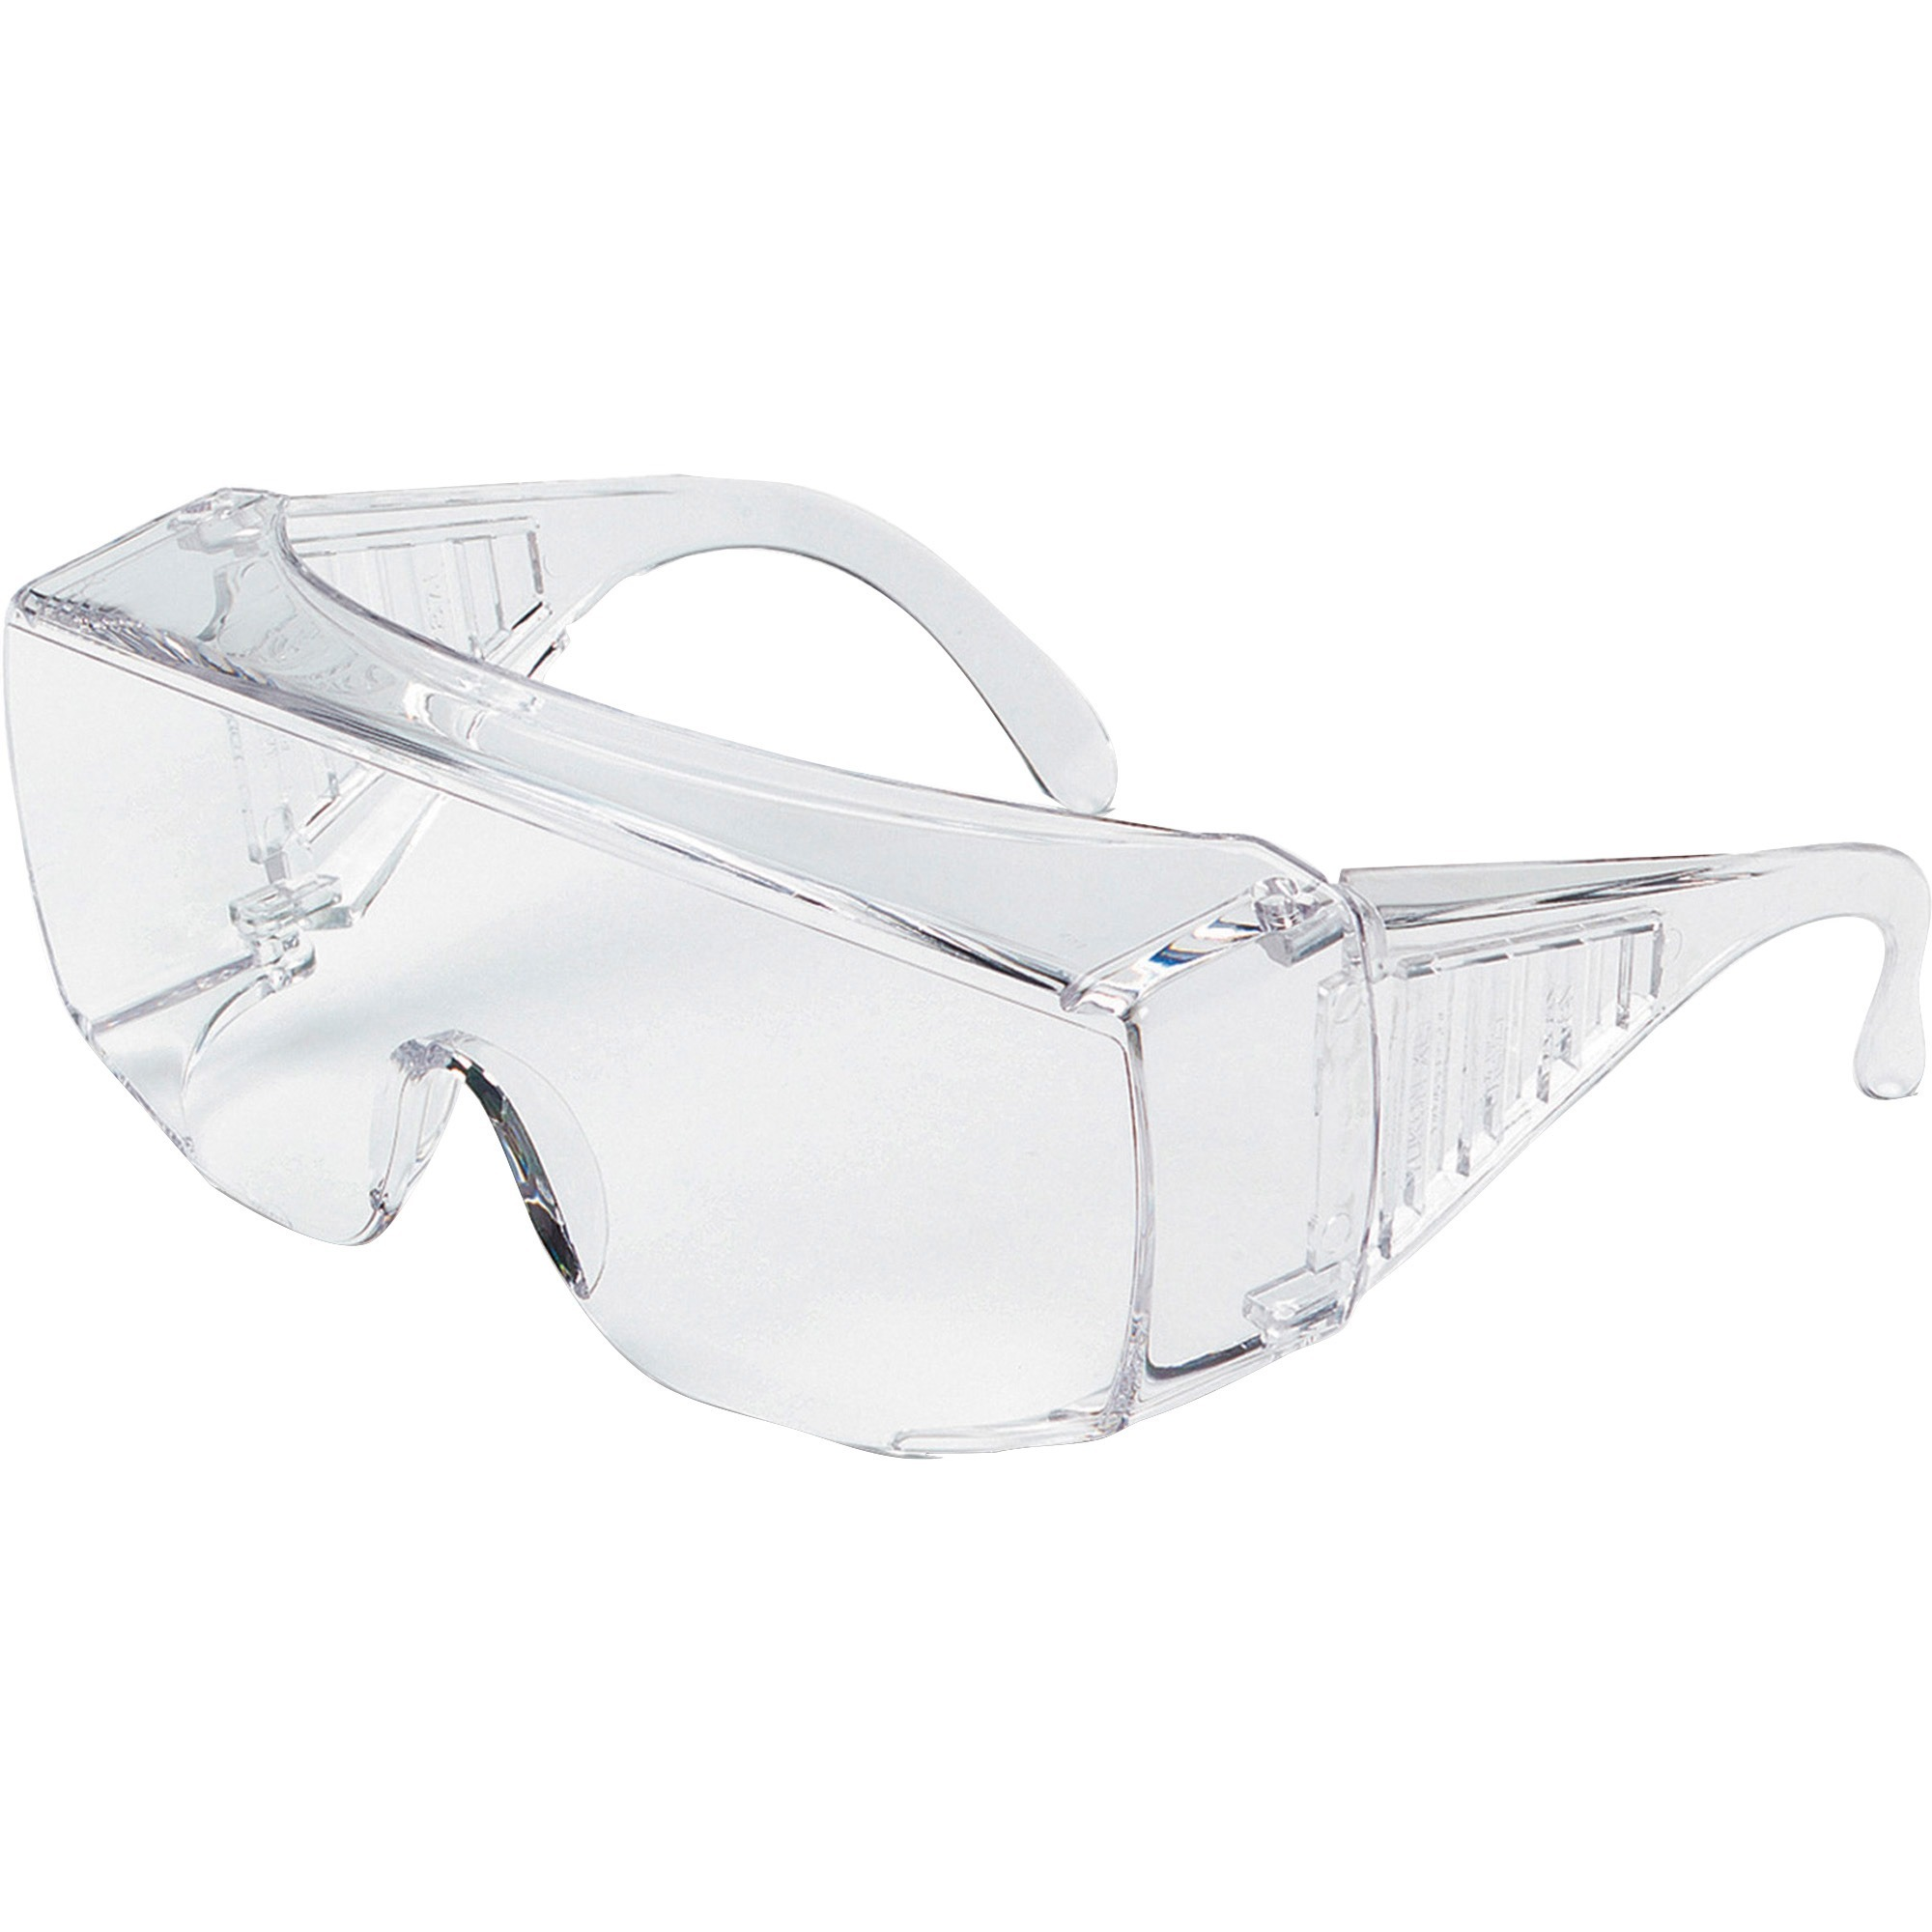 Mcr Safety 9800 Spec Yukon Clear Eyewear - Side Shield - Ultraviolet Protection - Polycarbonate - Clear - 1 Each